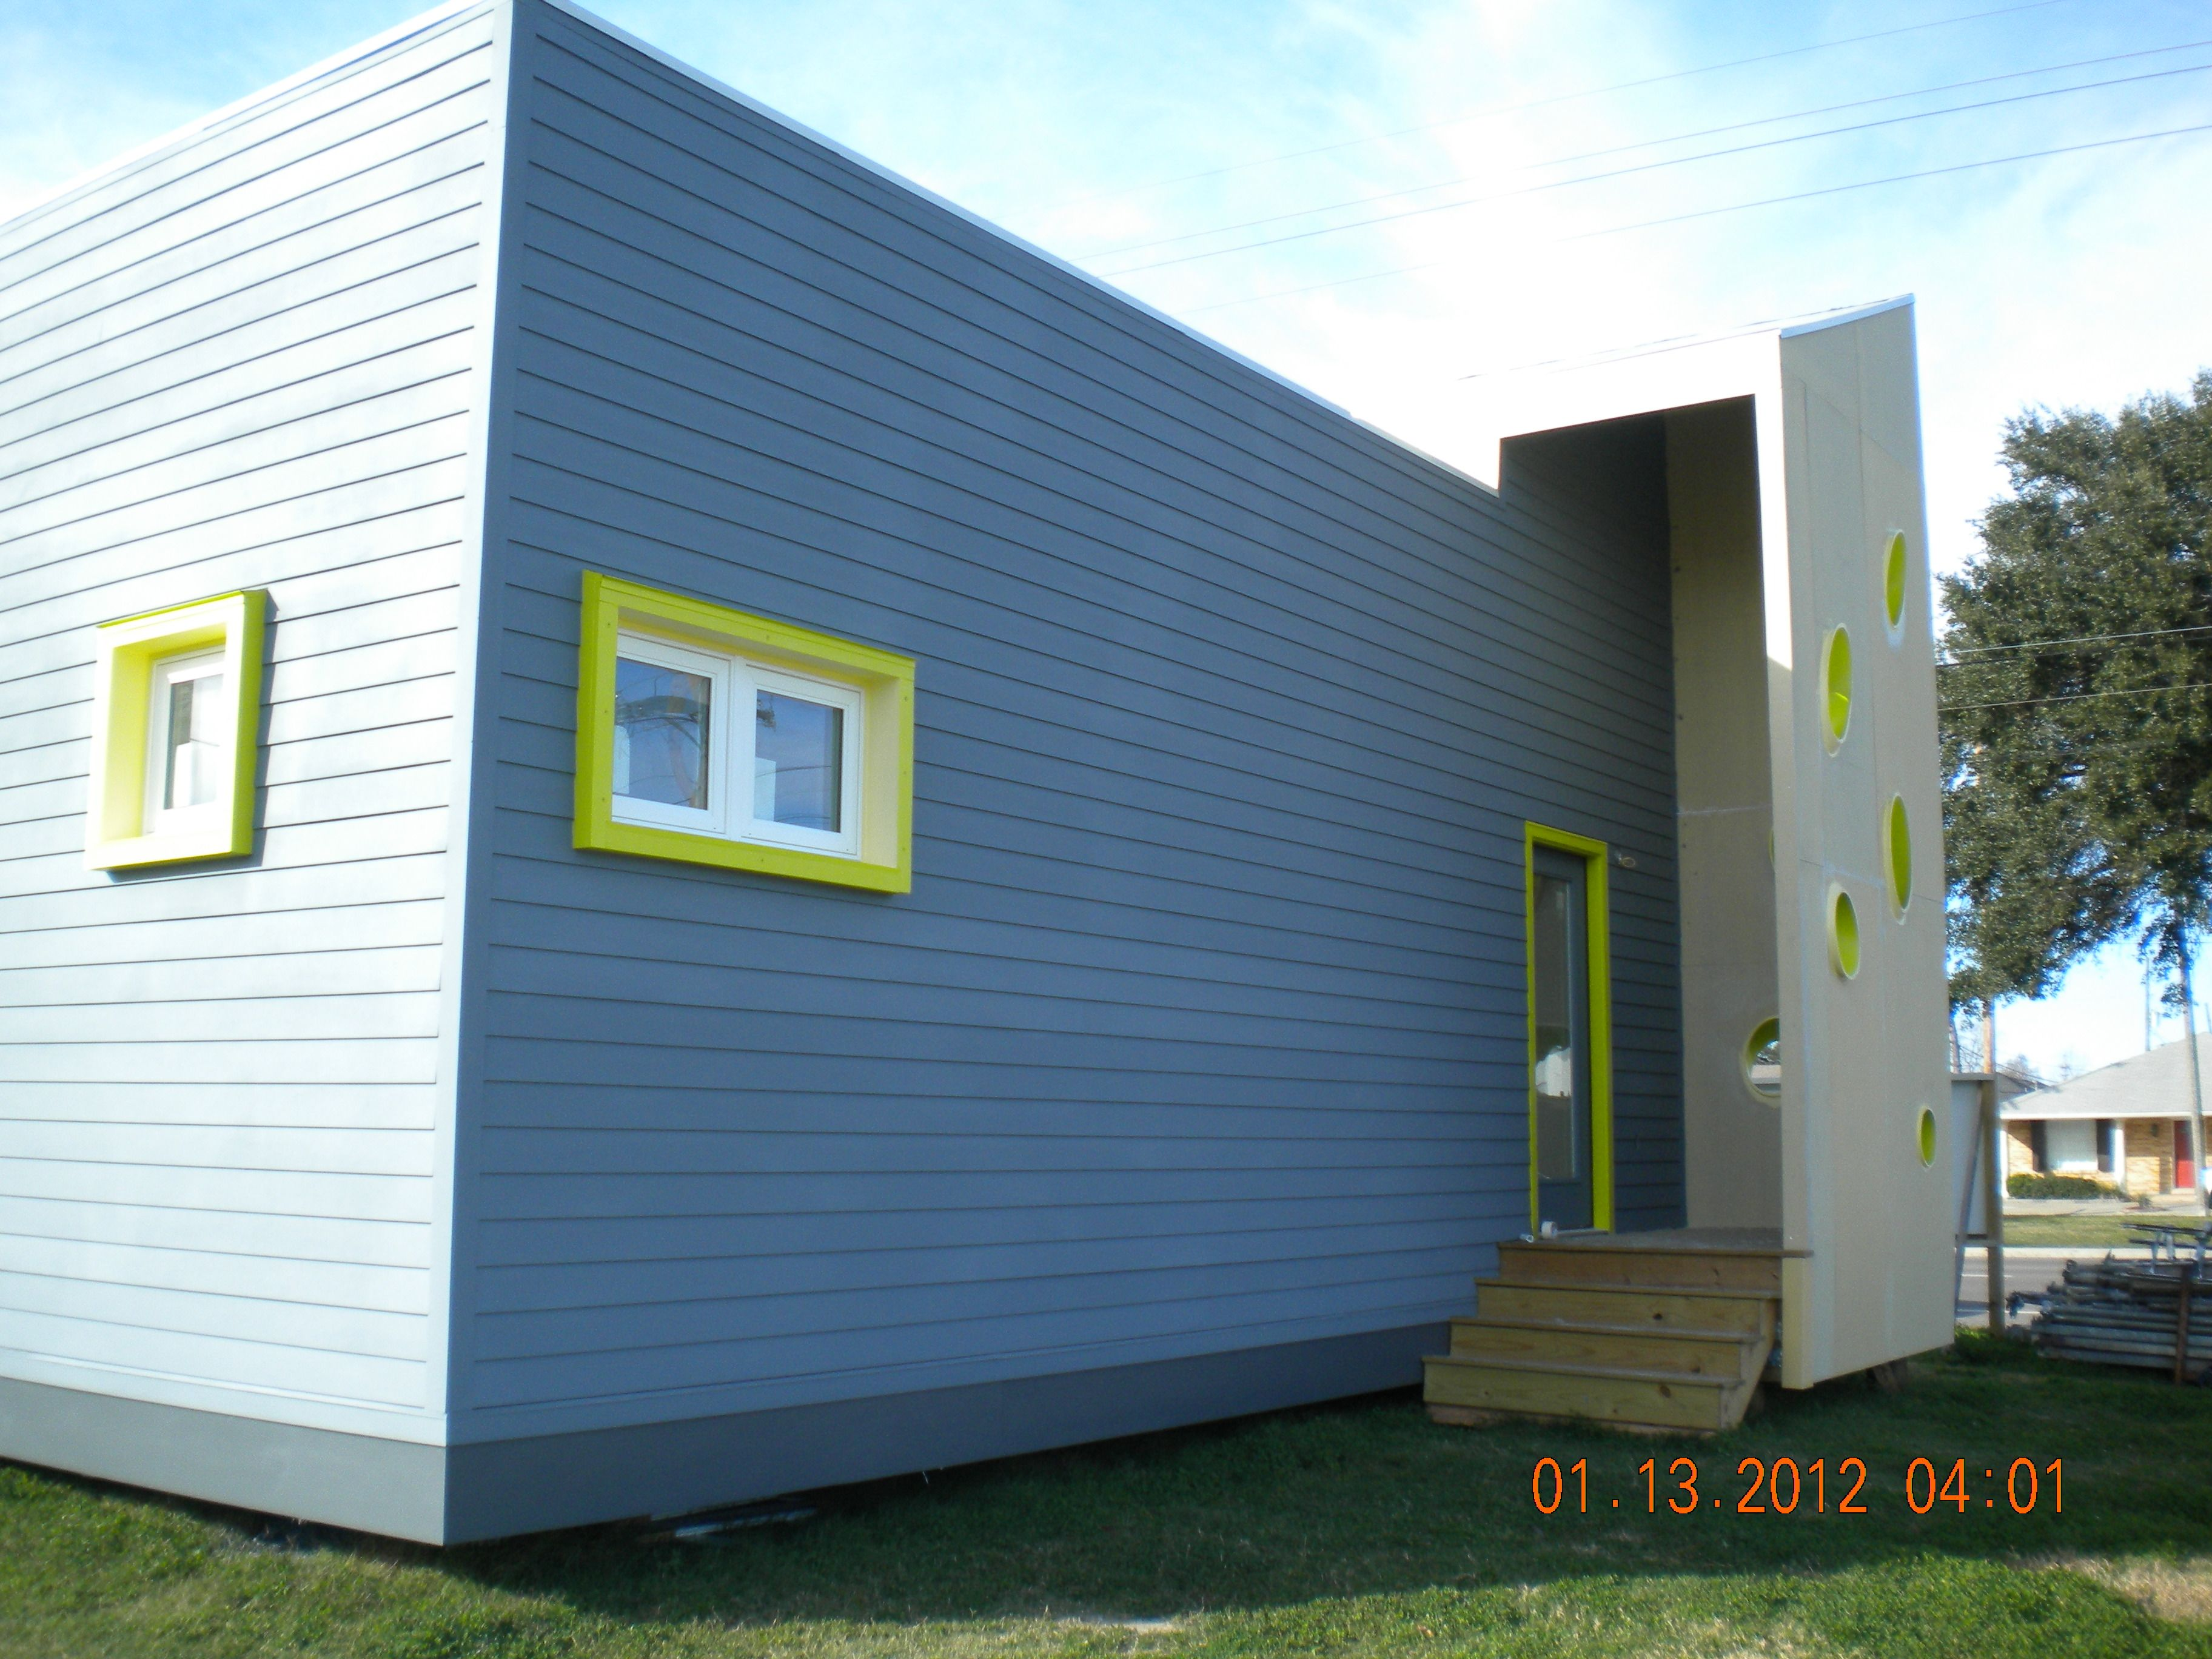 Accentuate Corners And Windows With Hardie Board Trim Plus Hardie - Home exterior design ideas siding